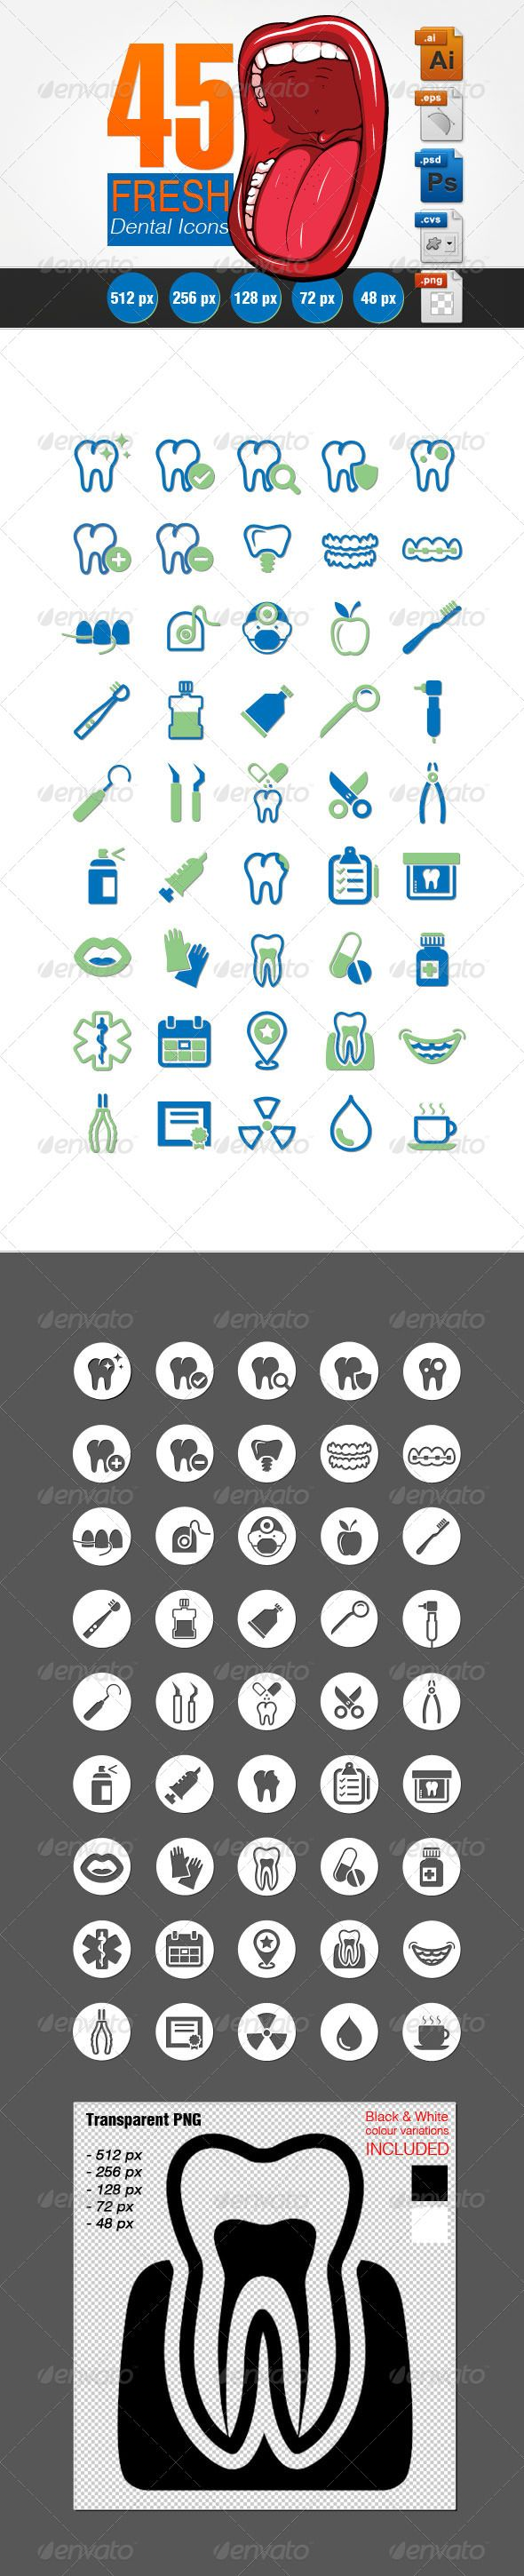 Fresh Dental Icons Set | Buy and Download: http://graphicriver.net/item/fresh-dental-icons-set/6669369?WT.ac=category_thumb&WT.z_author=balazsrenata&ref=ksioks